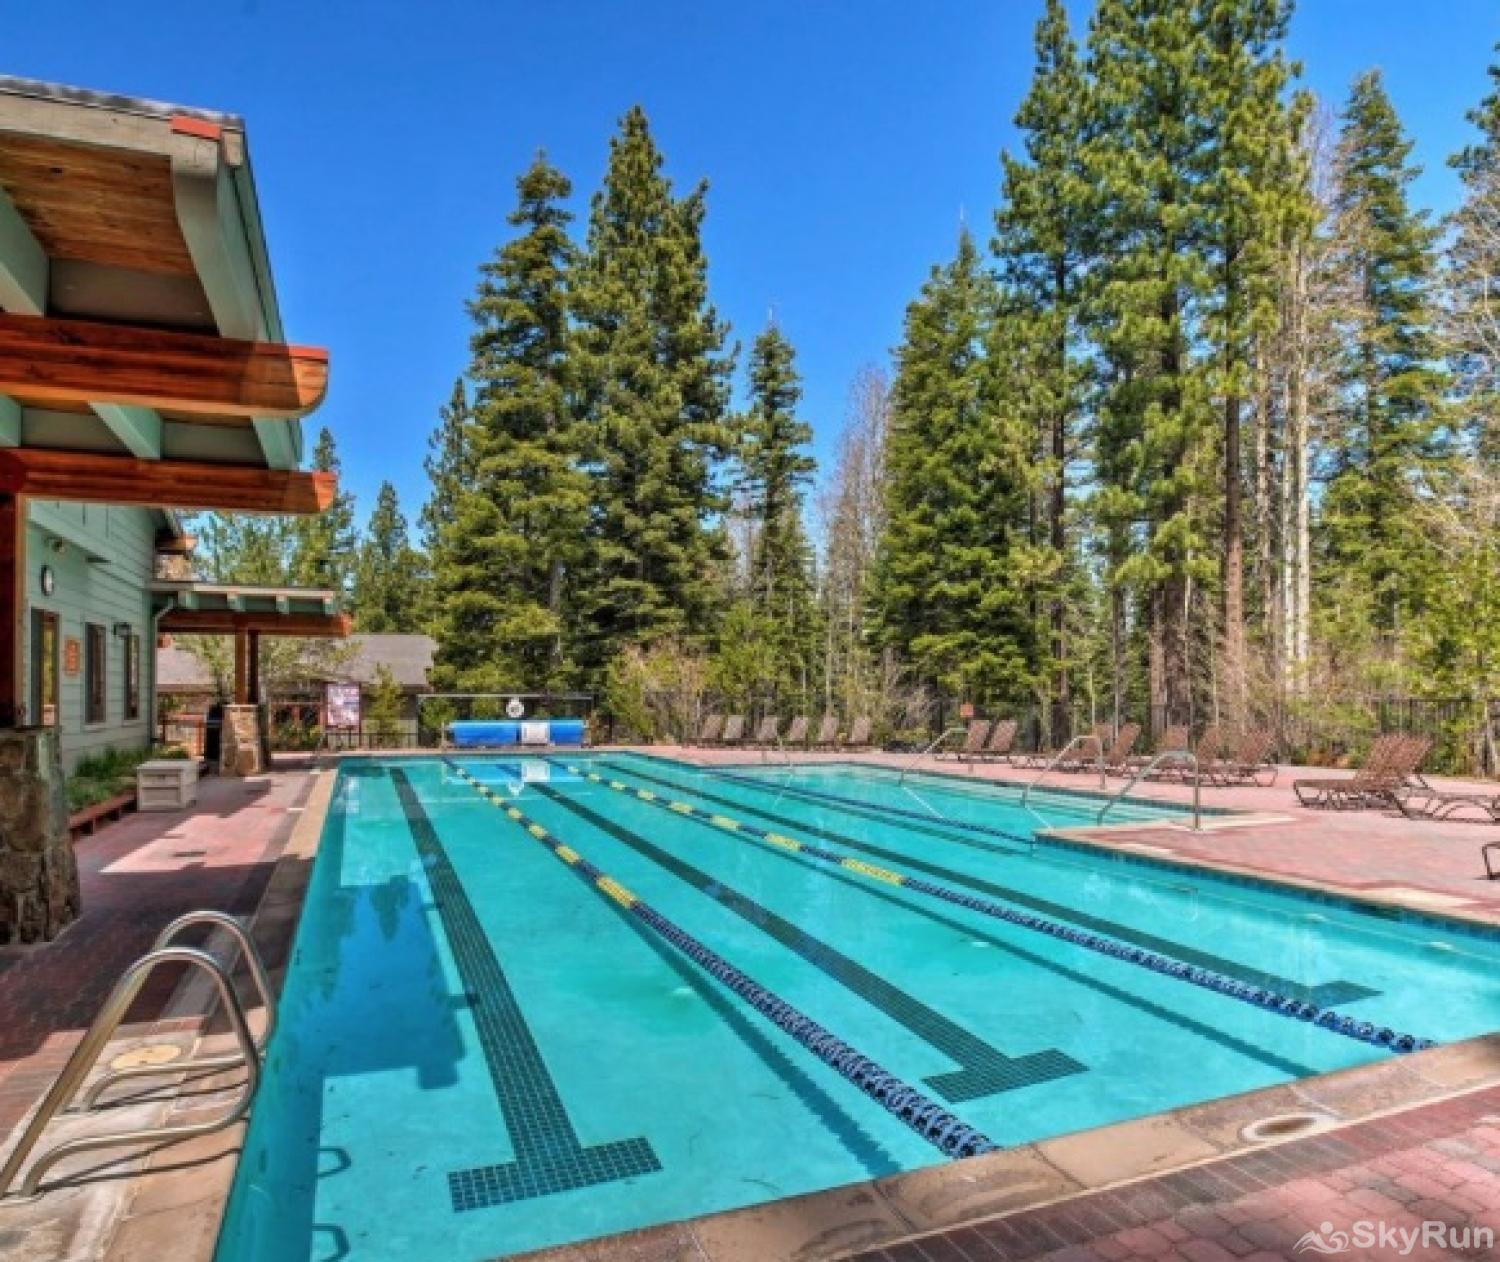 Northstar Luxury Lodgepole Retreat NPOA Recreation Center - Lap Pool